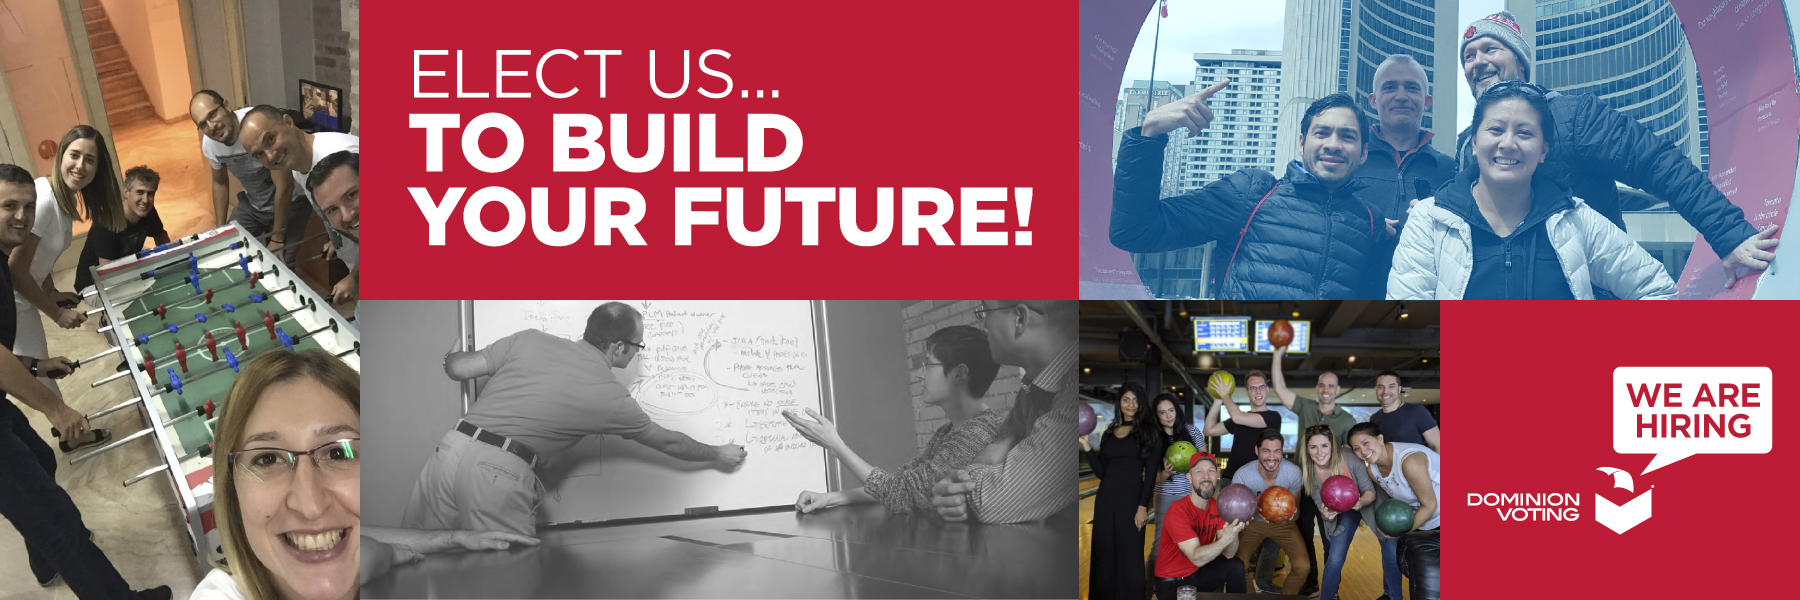 careers-elect-us-to-build-your-future